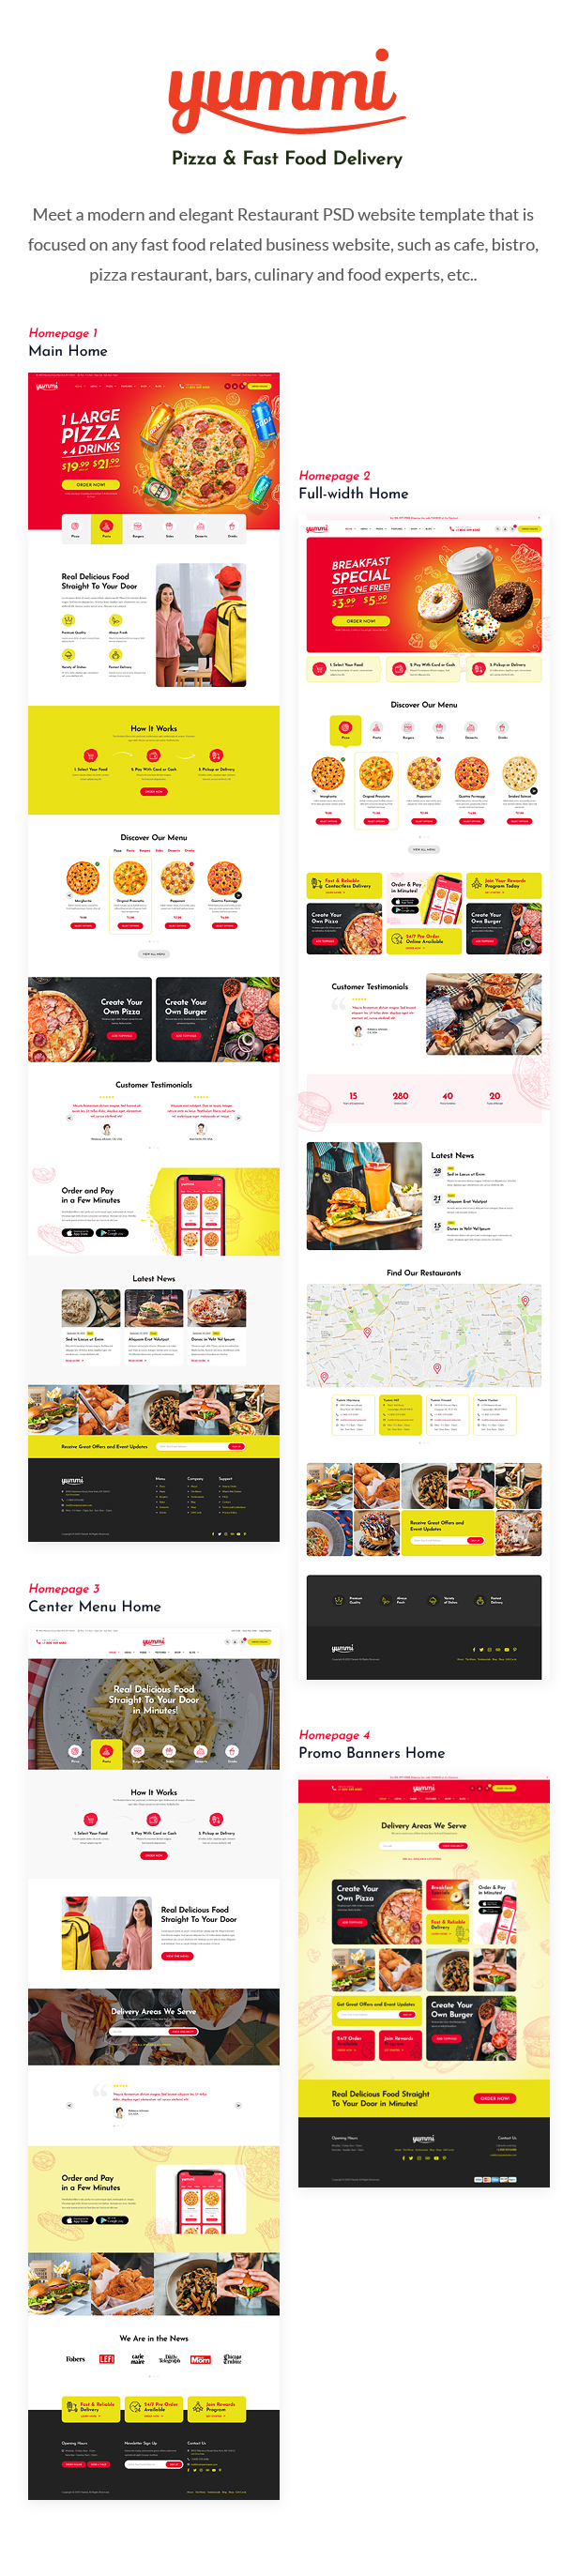 Yummy - Fast Food Delivery Restaurant PSD Template - 1